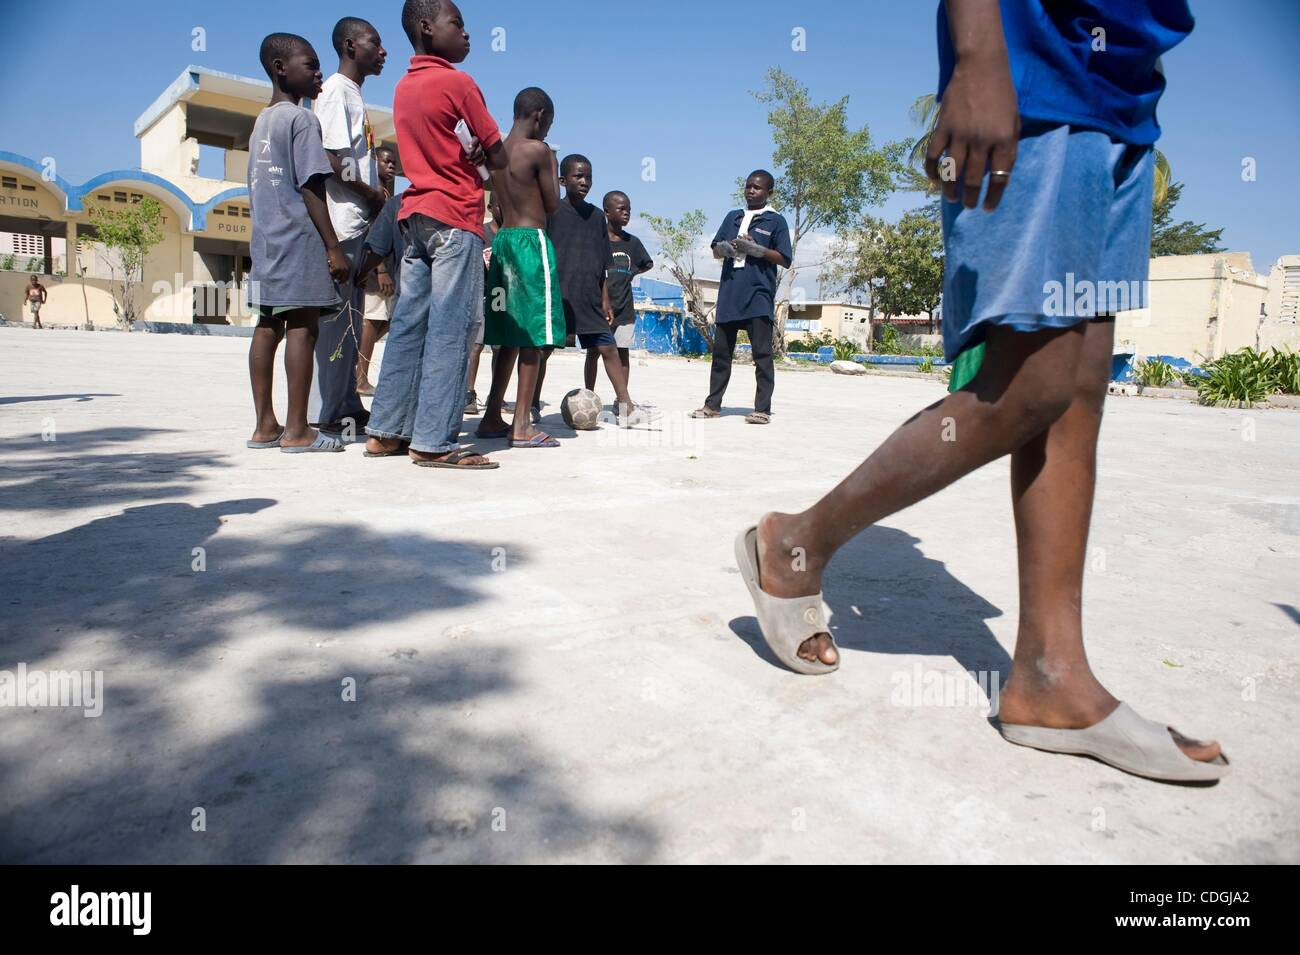 Jan 16, 2011 - Port Au Prince, Haiti - Children play in what was once one of the Duvalier's more notorious prisons, - Stock Image